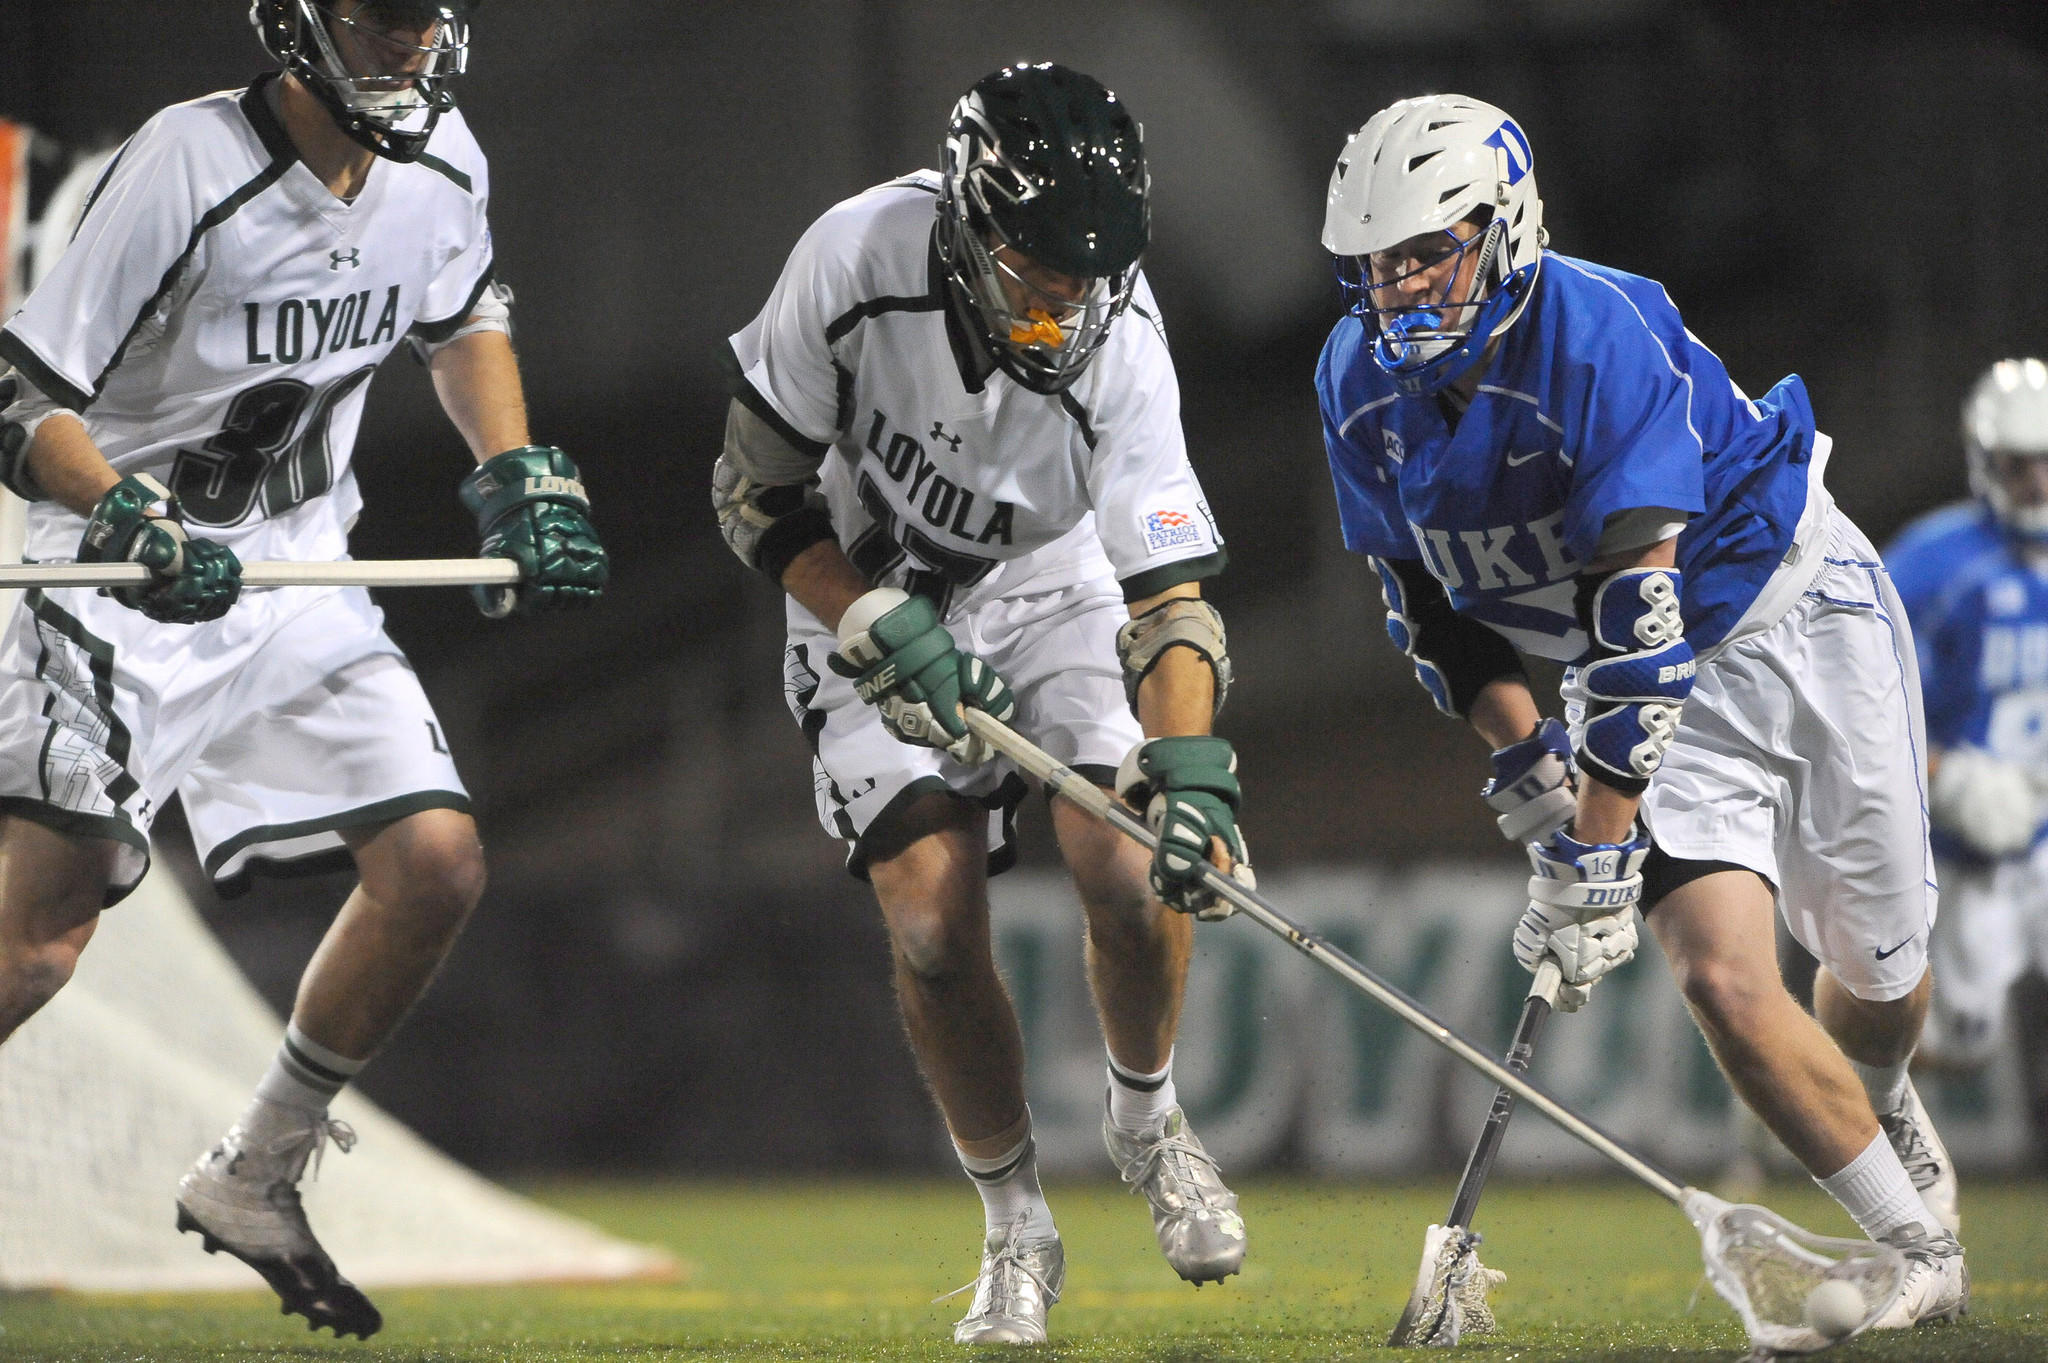 Senior midfielder Matt Sawyer and junior attackman Nikko Pontrello starred in then-No. 5 Loyolas 14-7 pasting of No. 6 Duke on Sunday, but Fletcher was responsible for snuffing out the Blue Devils' brightest star. The 6-foot-2, 185-pound senior defenseman limited senior attackman Jordan Wolf to a single goal on seven shots and zero assists. Wolf had entered the game leading Duke in goals (12) and assists (10). Fletcher also tied Blue Devils senior faceoff specialist Brendan Fowler with a game-high seven ground balls. For his performance, Fletcher - who leads the Greyhounds in caused turnovers (11) and is tied with freshman faceoff specialist Graham Savio in ground balls (25) - was named the Patriot League Defensive Player of the Week for the second time in three weeks.